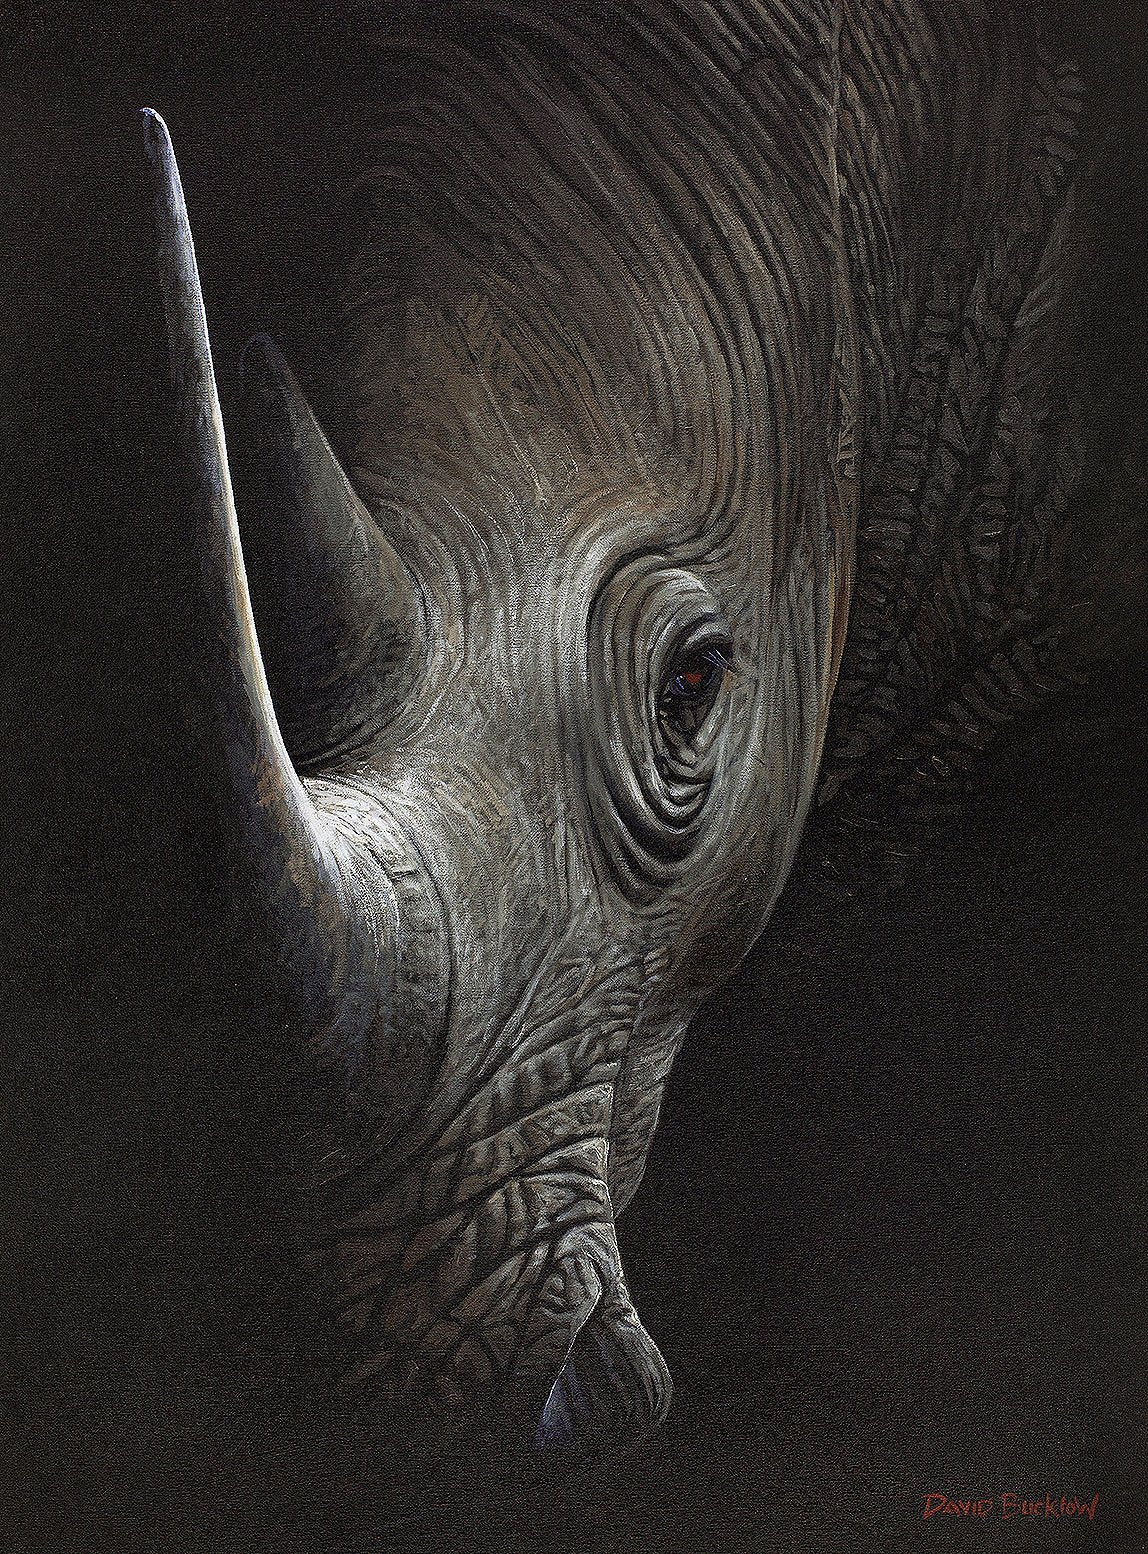 South African Limited Editions by David Bucklow - In the Shadows - Rhino - Fine Art Portfolio